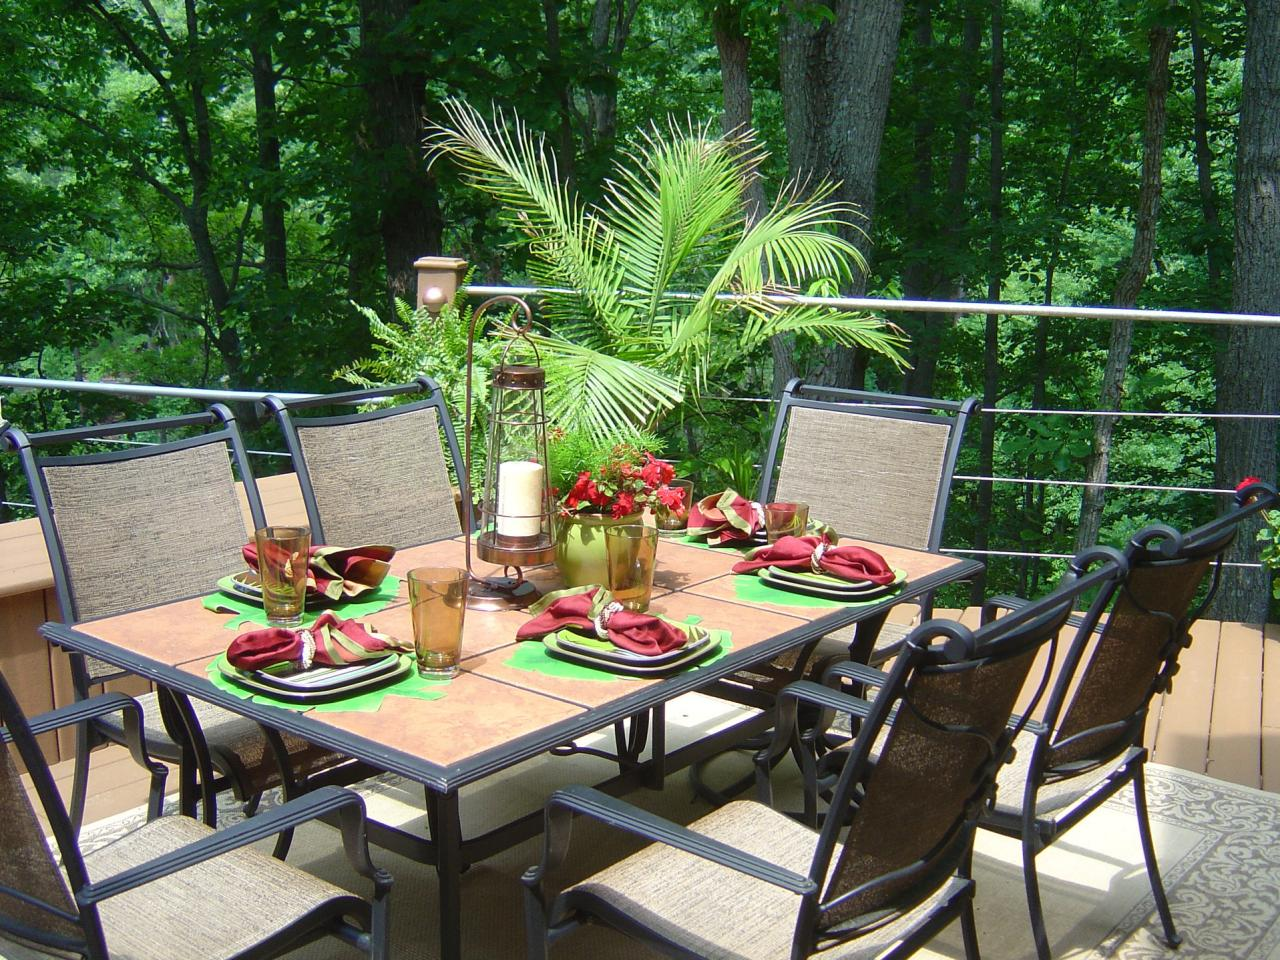 Outdoor entertaining tips for summer hgtv for Patio decorating photos